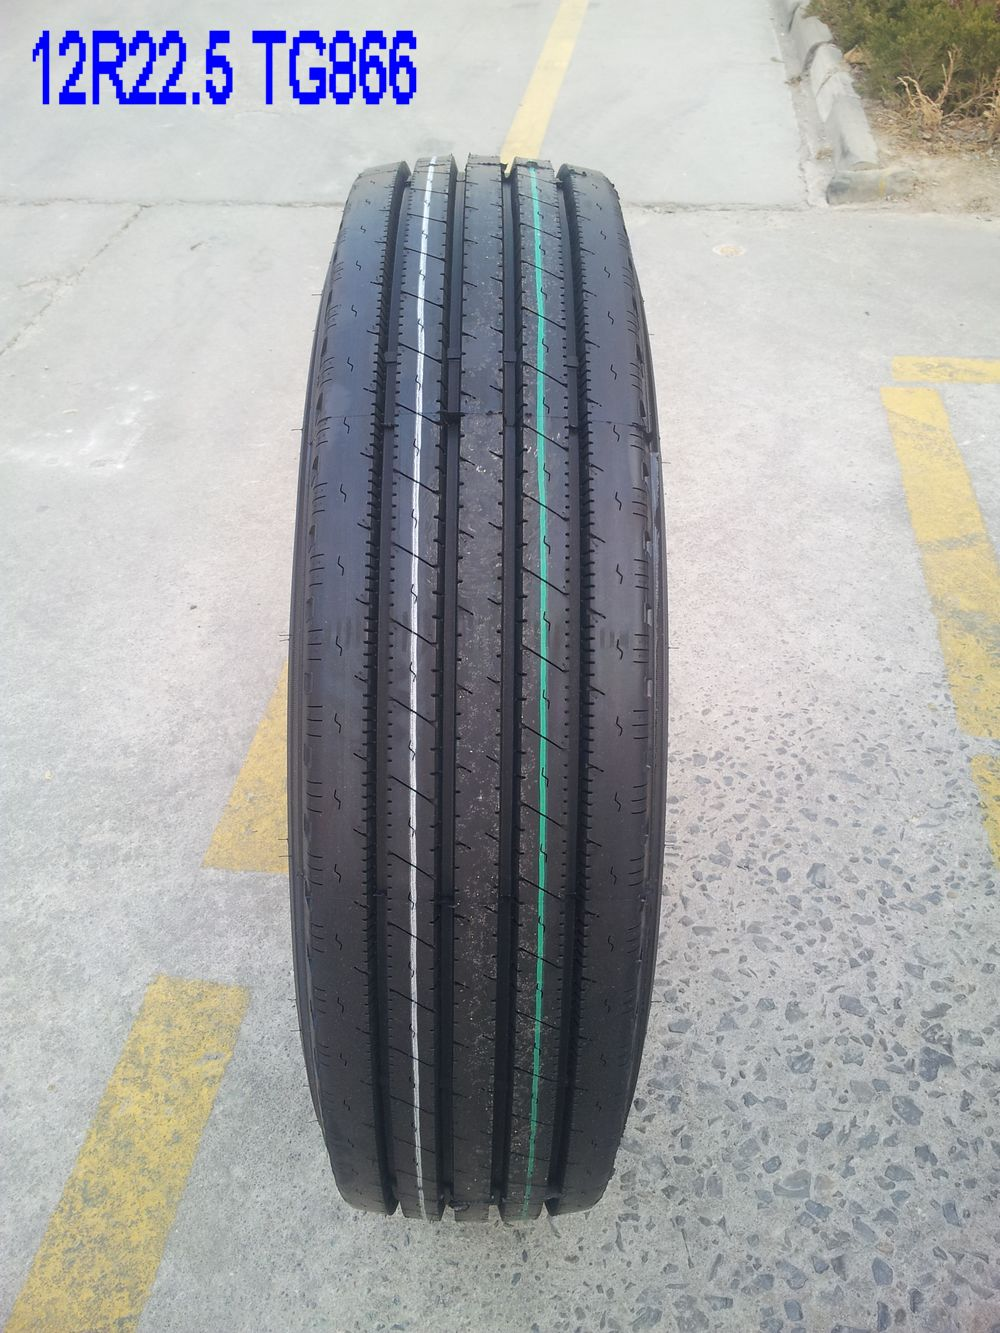 Wholesale Distributor Opportunities Uk Cheap Chinese Tires 315 80 22 5 New Products Looking For